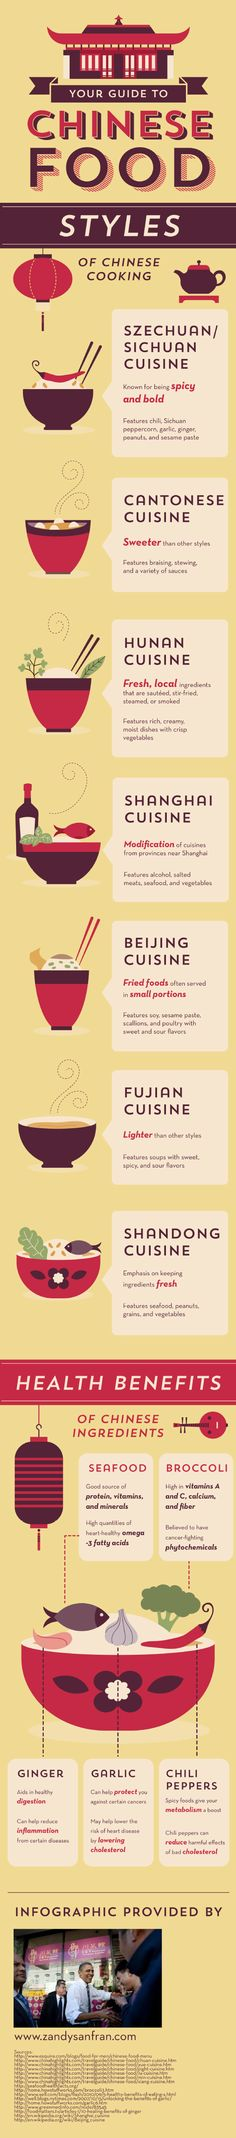 Daily Infographic | Your Guide to Chinese Food [Infographic] - schwartzbrown@gmail.com - Gmail